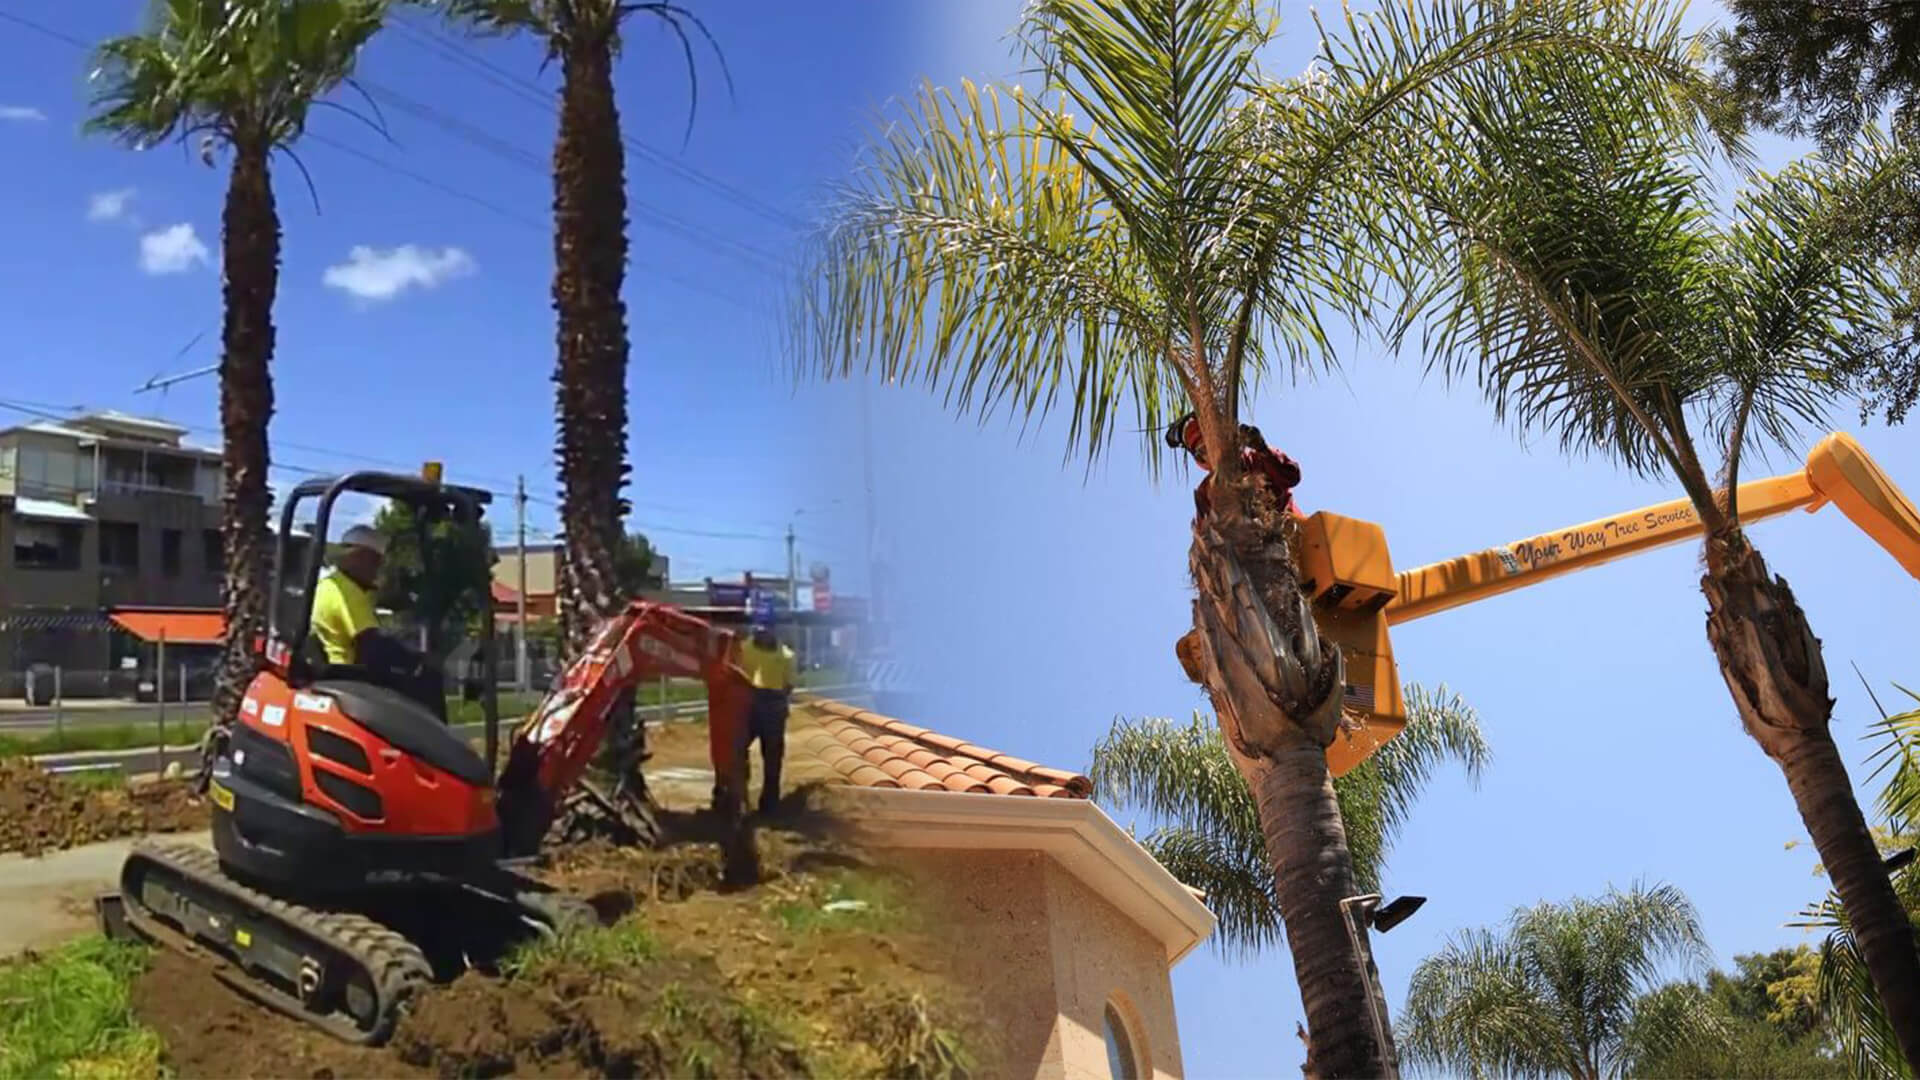 Palm tree trimming & palm tree removal-Pembroke Pines FL Tree Trimming and Stump Grinding Services-We Offer Tree Trimming Services, Tree Removal, Tree Pruning, Tree Cutting, Residential and Commercial Tree Trimming Services, Storm Damage, Emergency Tree Removal, Land Clearing, Tree Companies, Tree Care Service, Stump Grinding, and we're the Best Tree Trimming Company Near You Guaranteed!